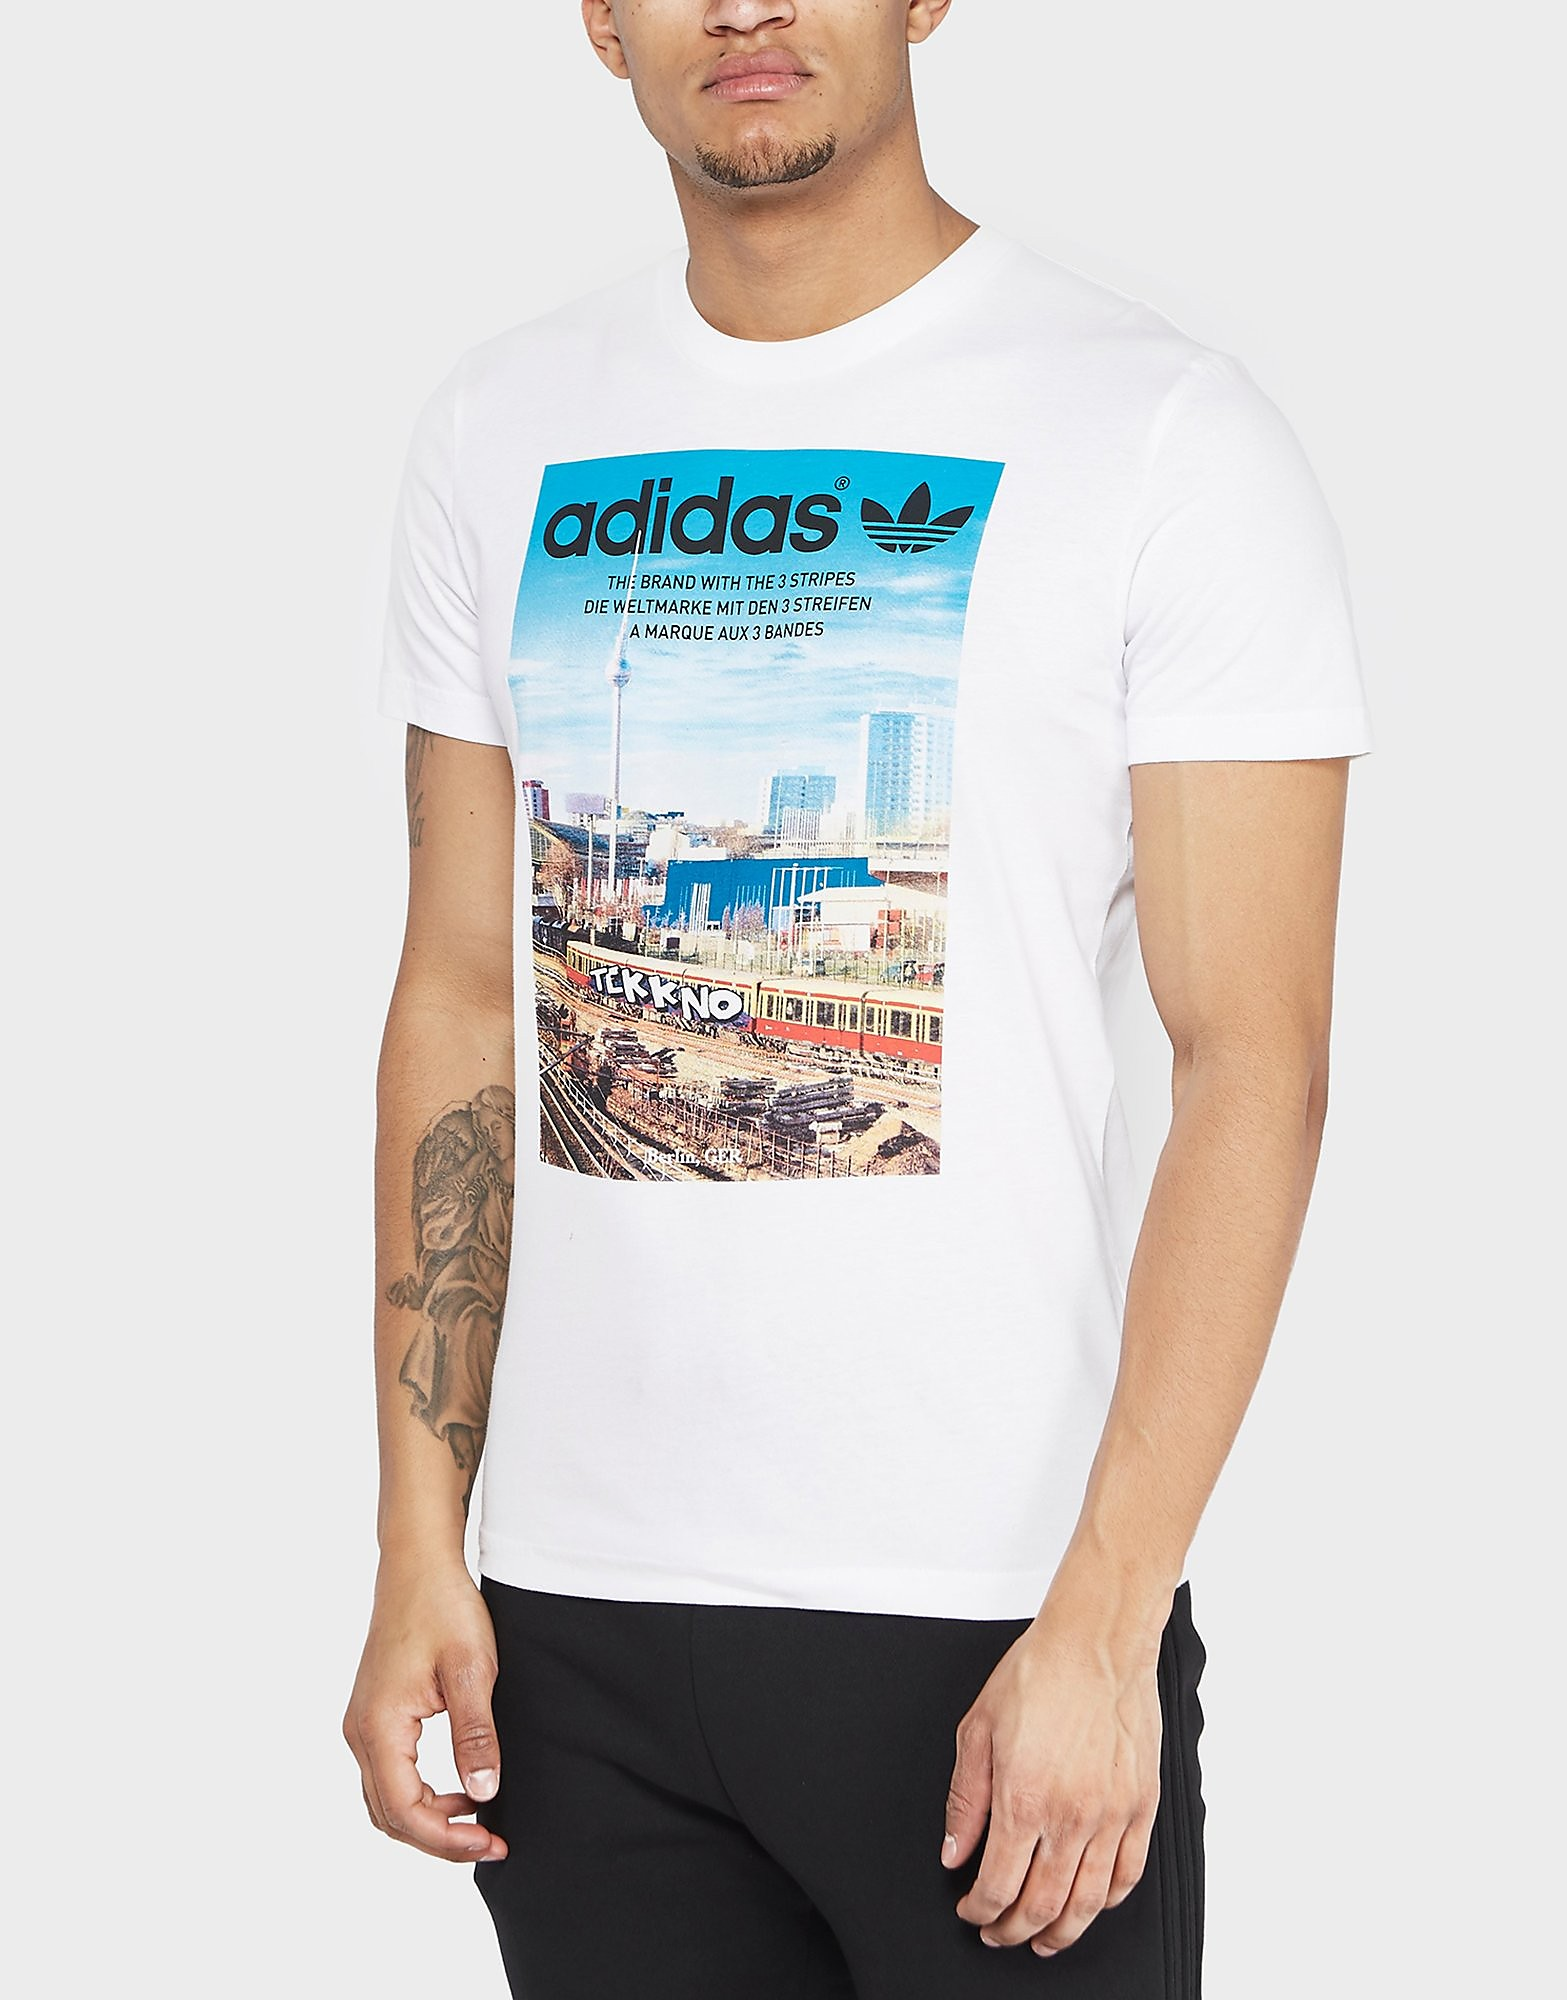 adidas Originals Berlin City Short Sleeve T-Shirt